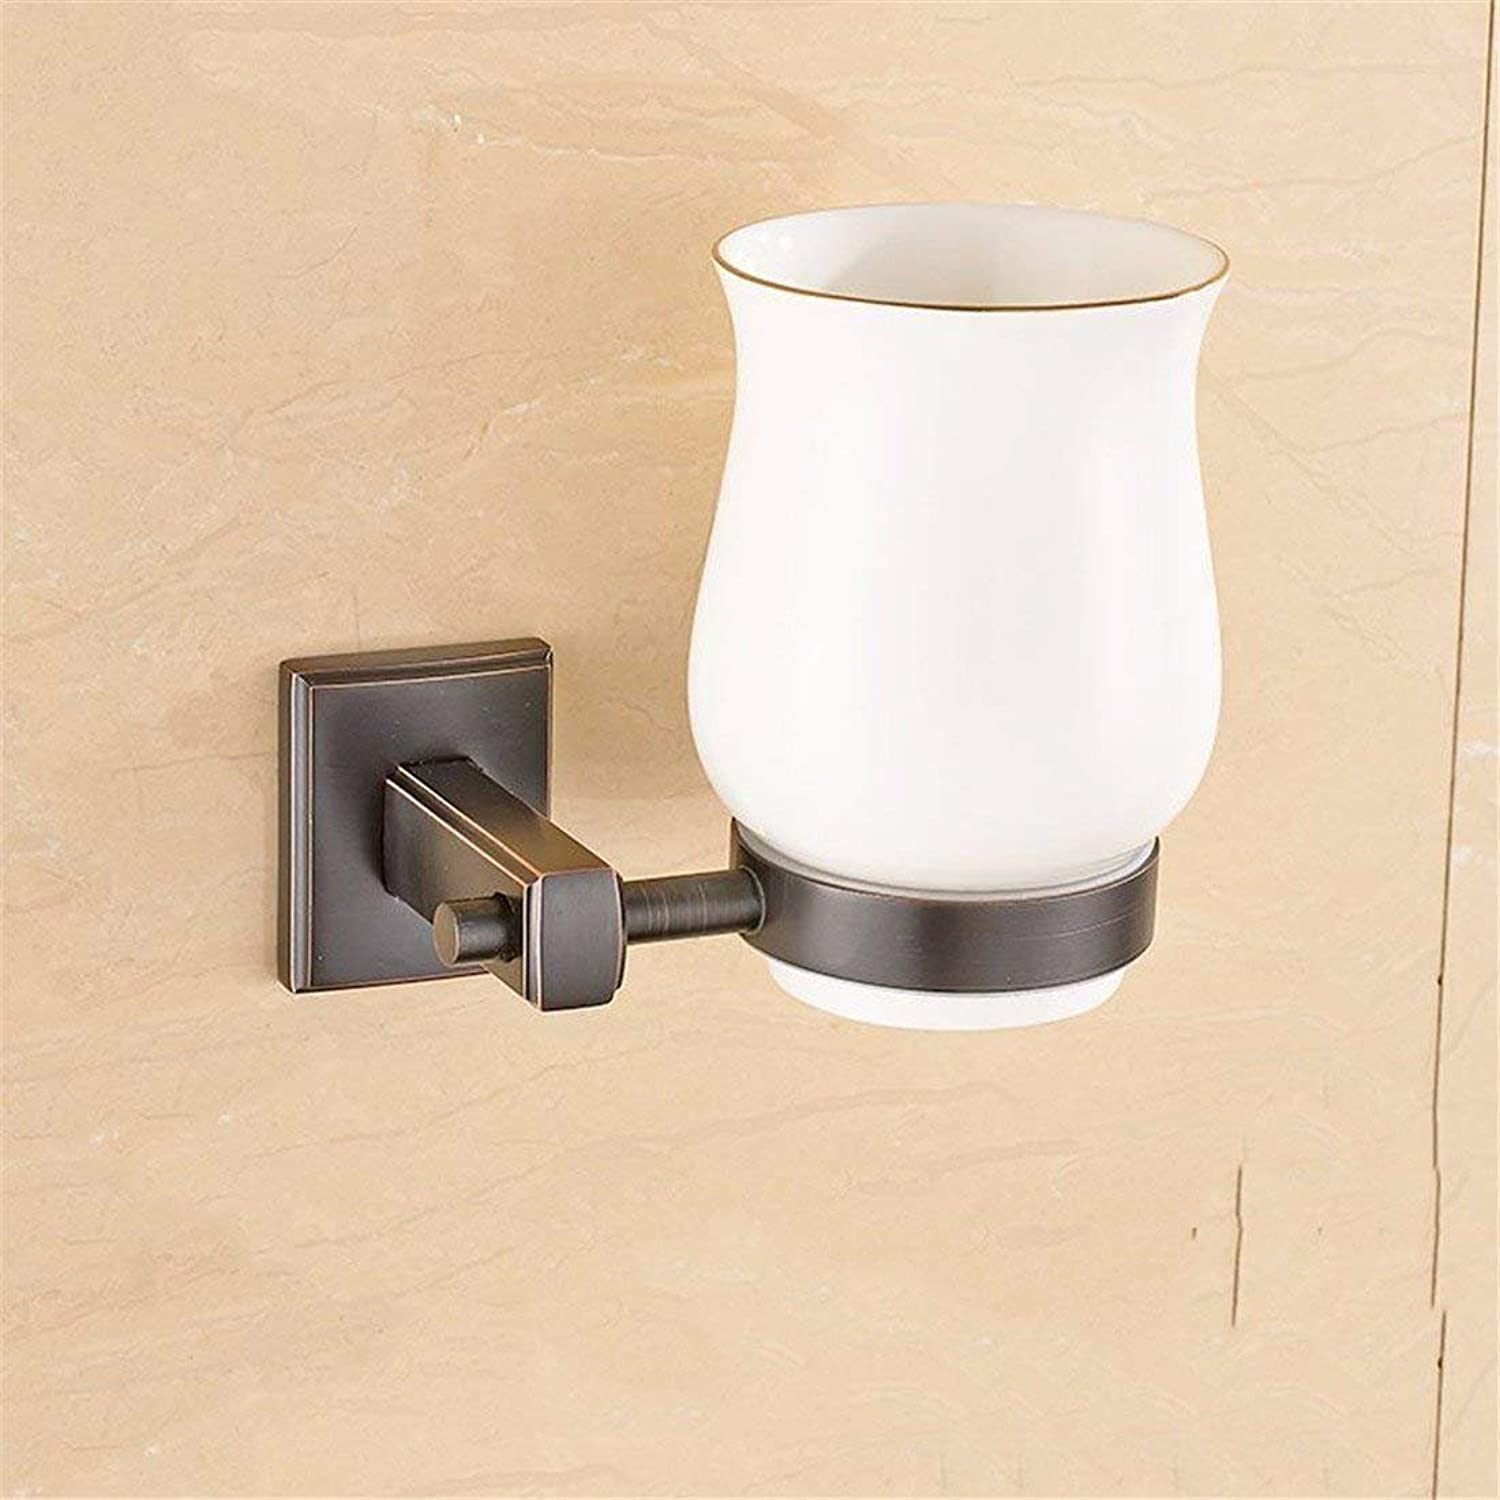 Accessories for Bathroom Simple Black The Whole of Europe Bronze Door Door Copper-soap Hook Paper,Single Cup